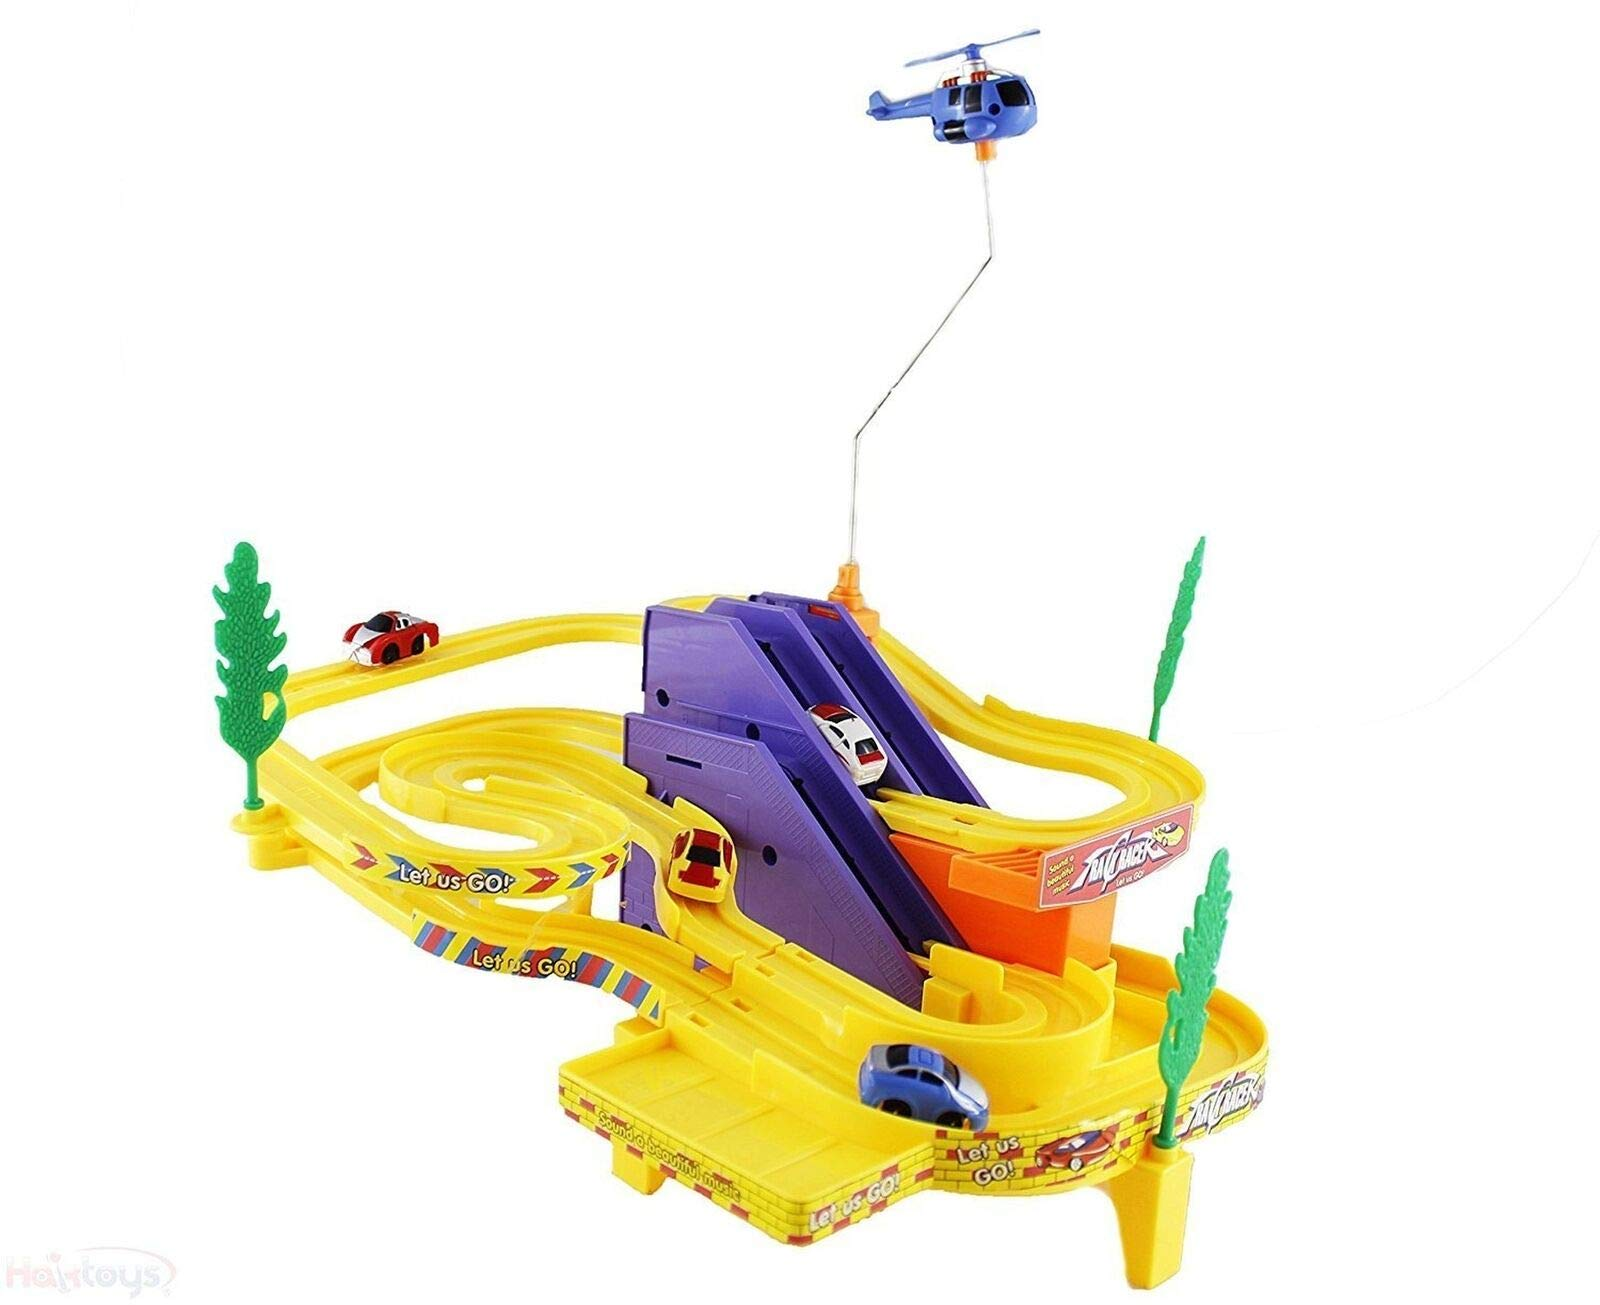 Lonestar Wholesalers Track Racer Set with Music - Building Toy for Toddlers Kids by Lonestar Wholesalers